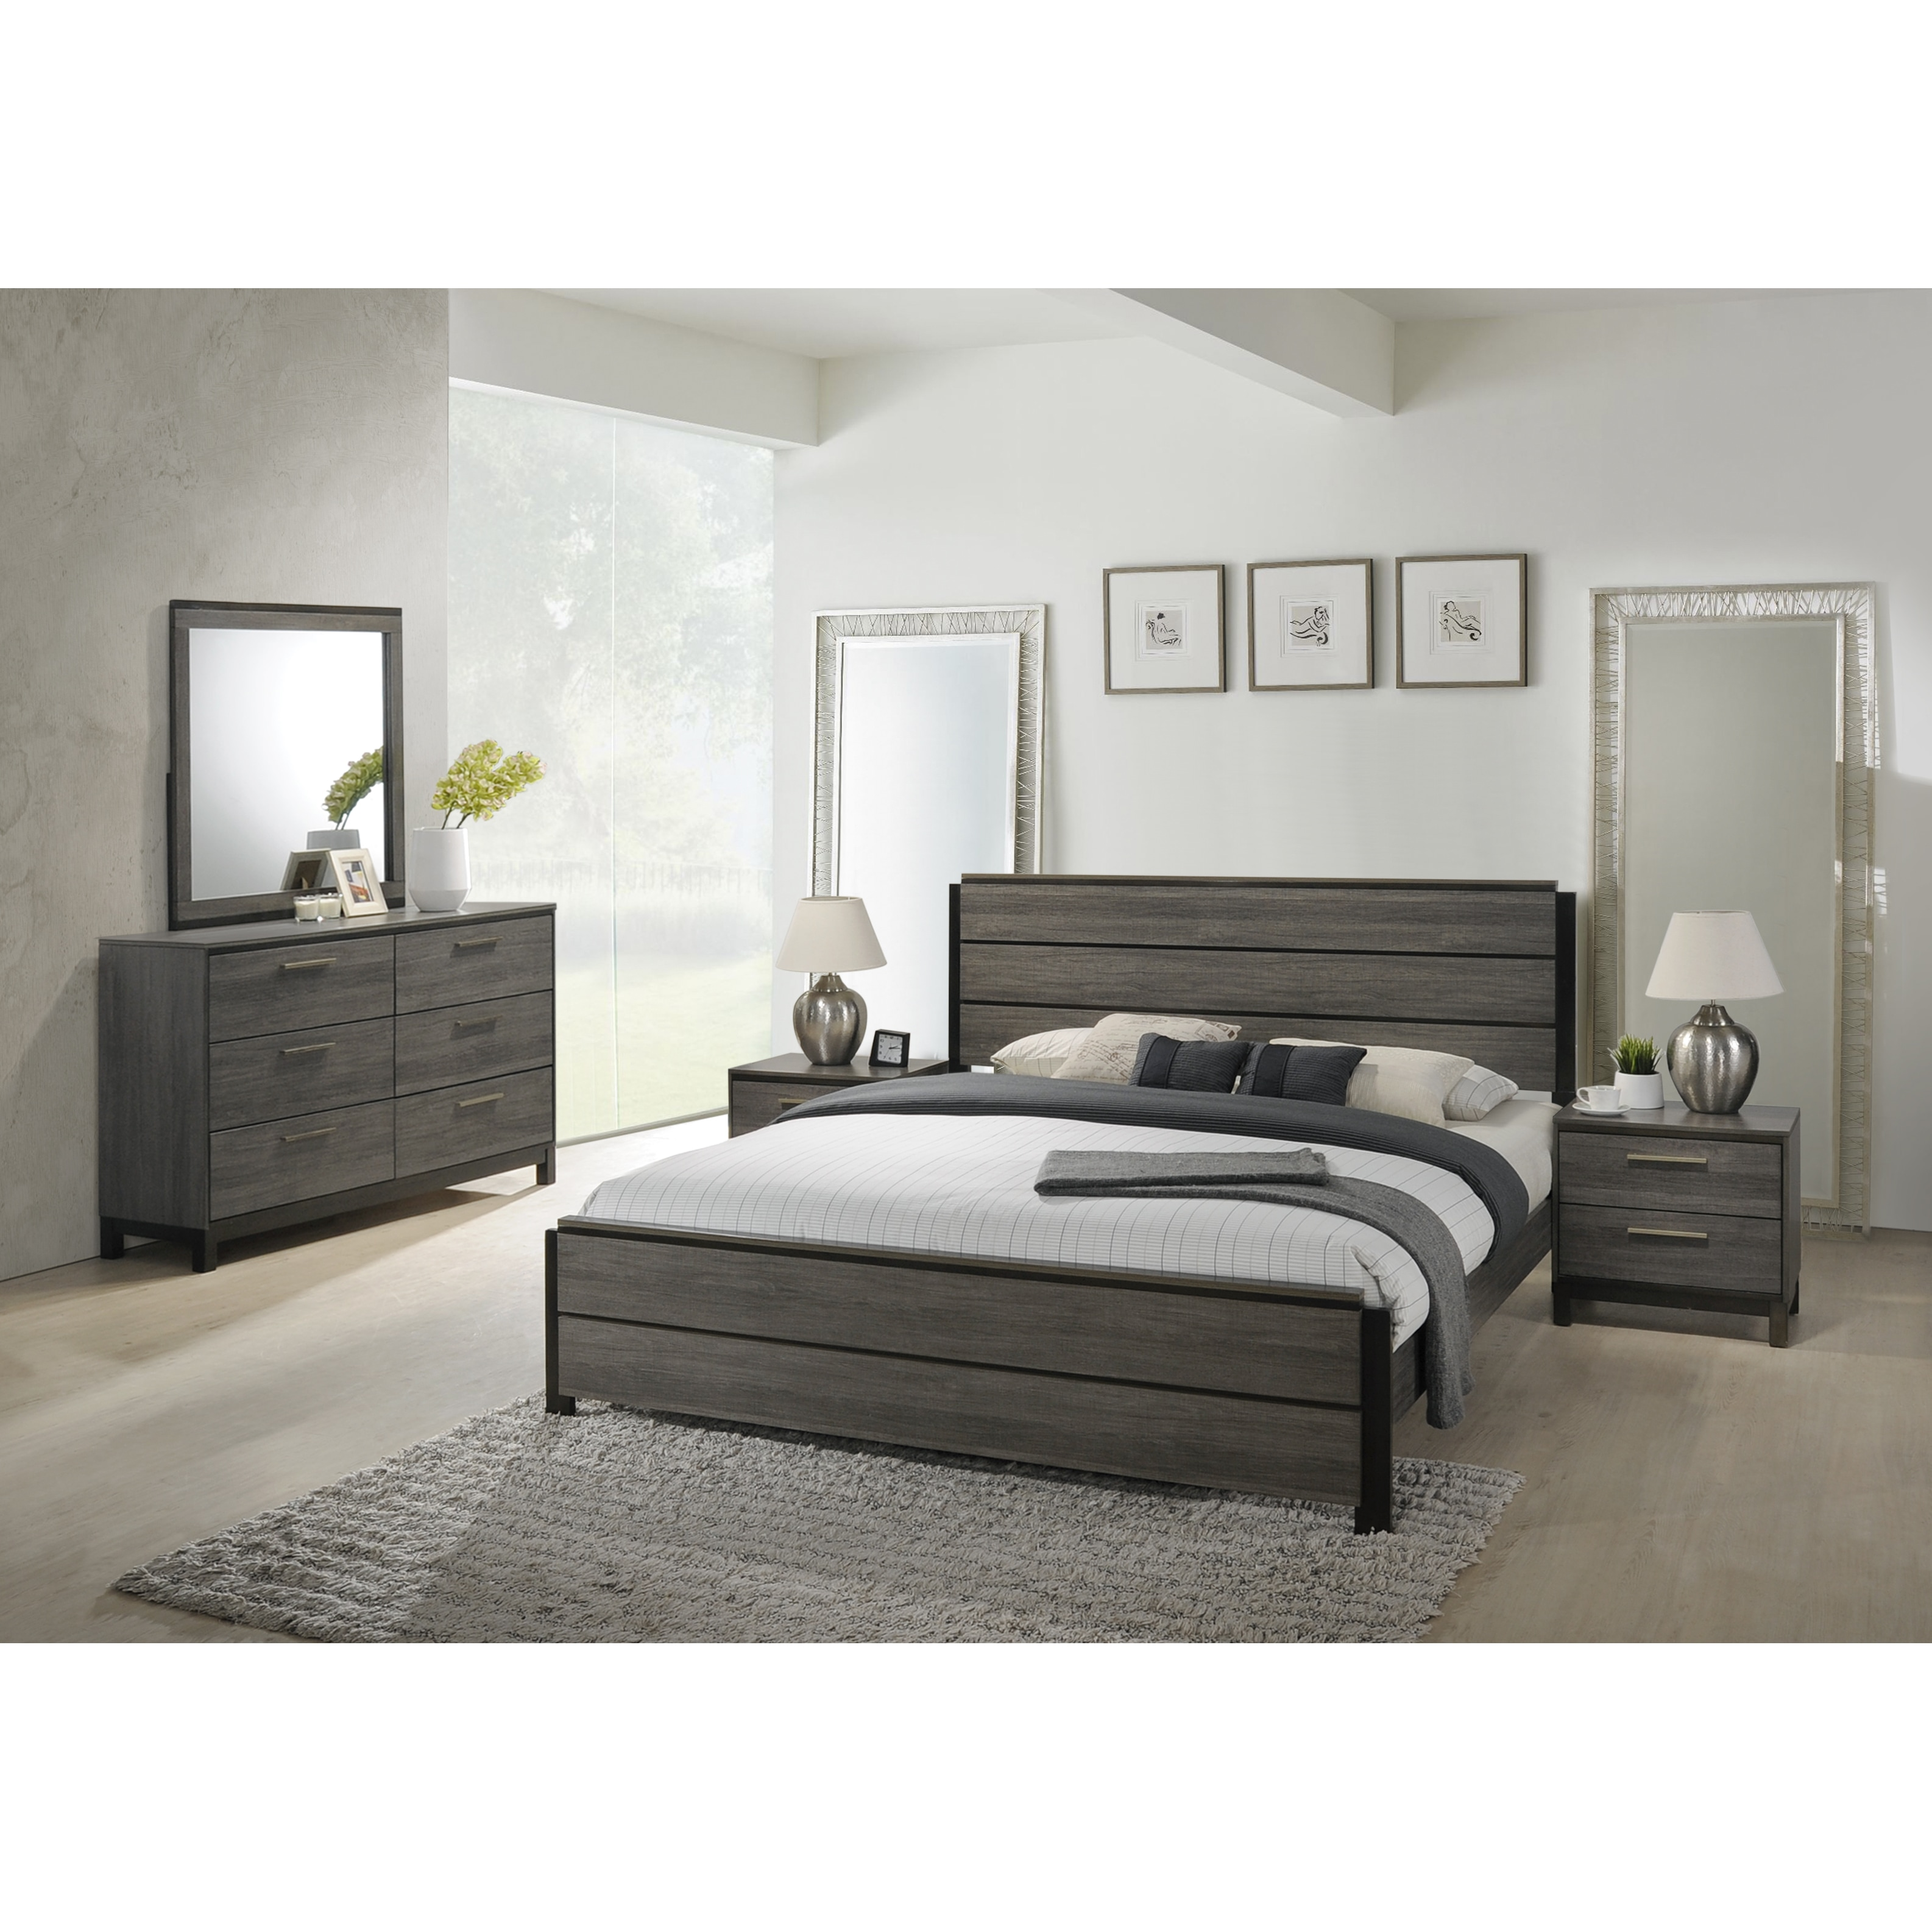 Shop Ioana 187 Antique Grey Wood Bed Room Set On Sale Overstock 14988678